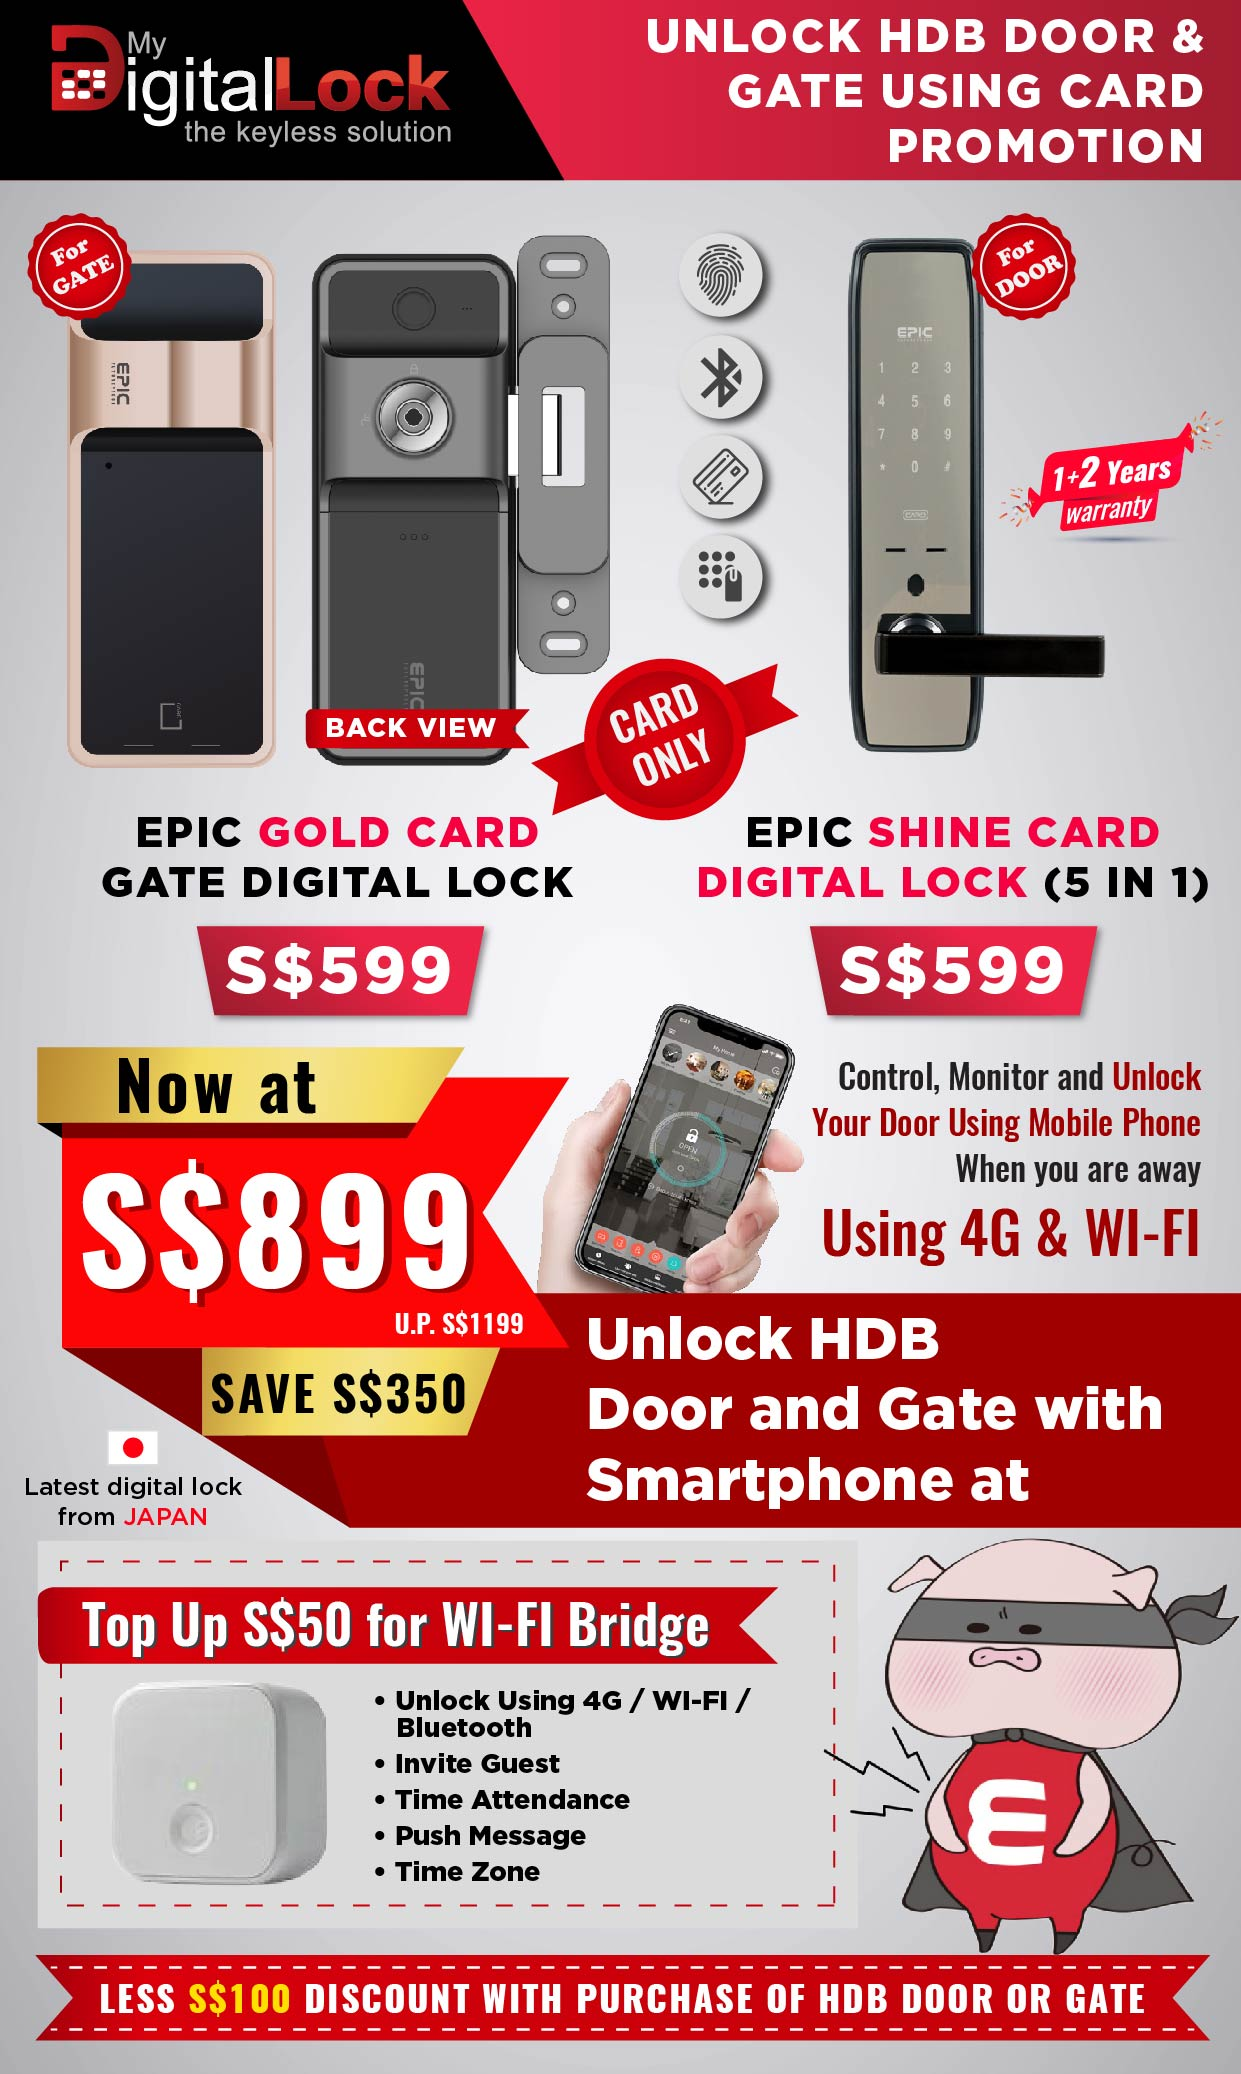 Buy EPIC Gold Card Gate Digital Lock Promotion @ My Digital Lock. Call 9067 7990